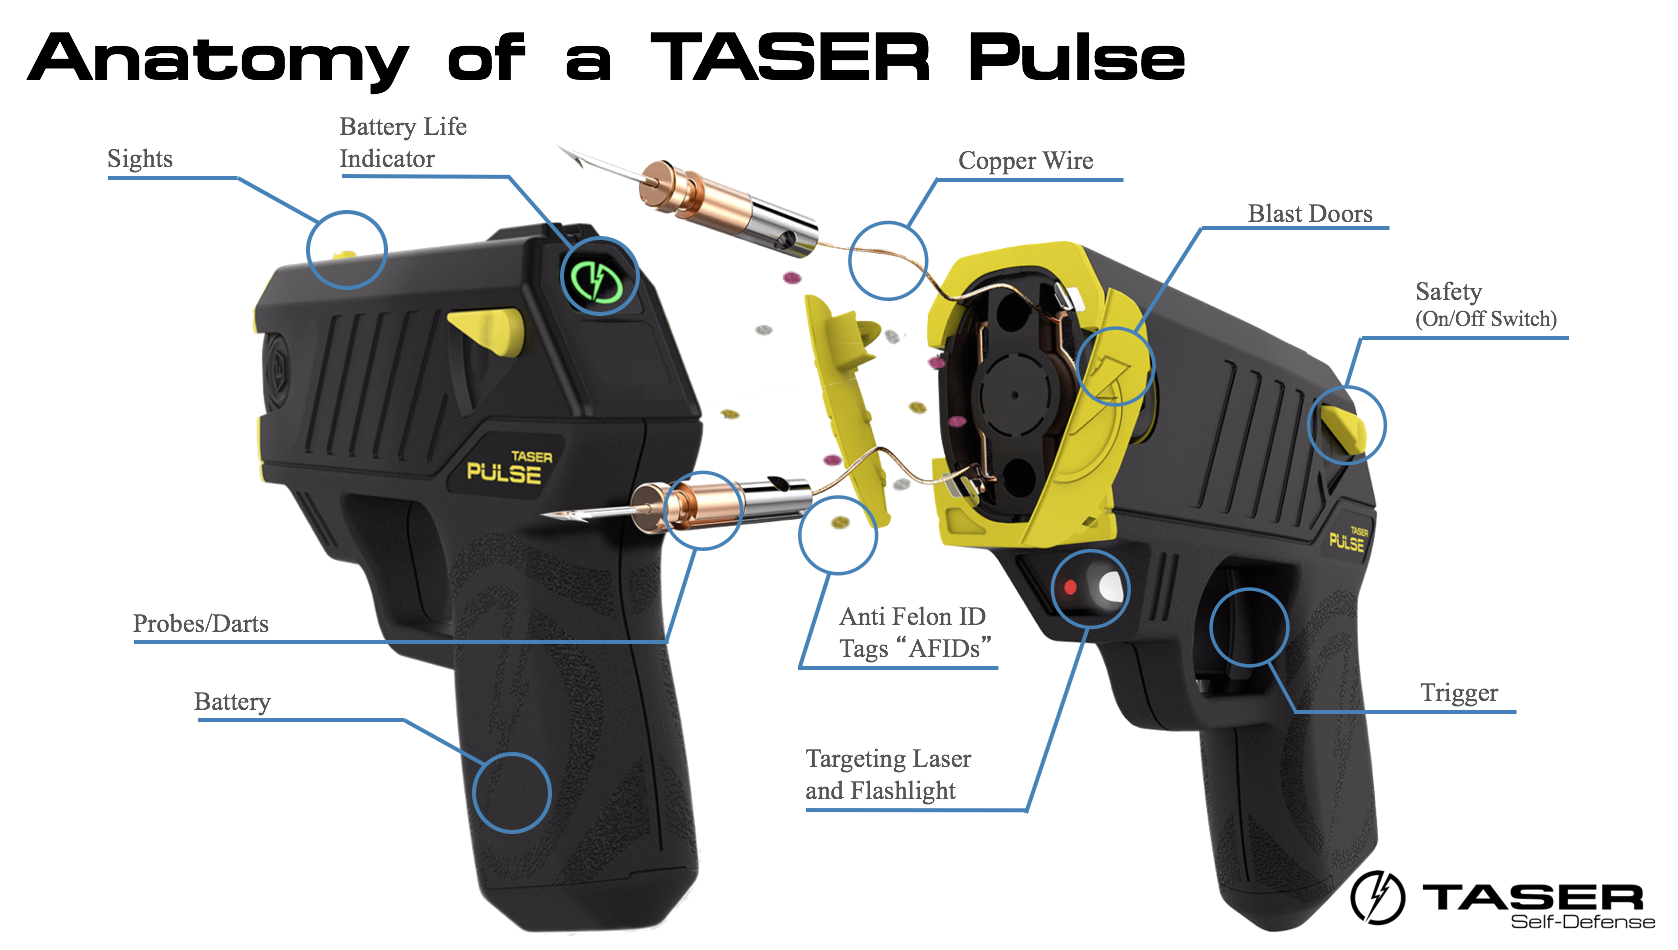 The Anatomy of a TASER Pulse